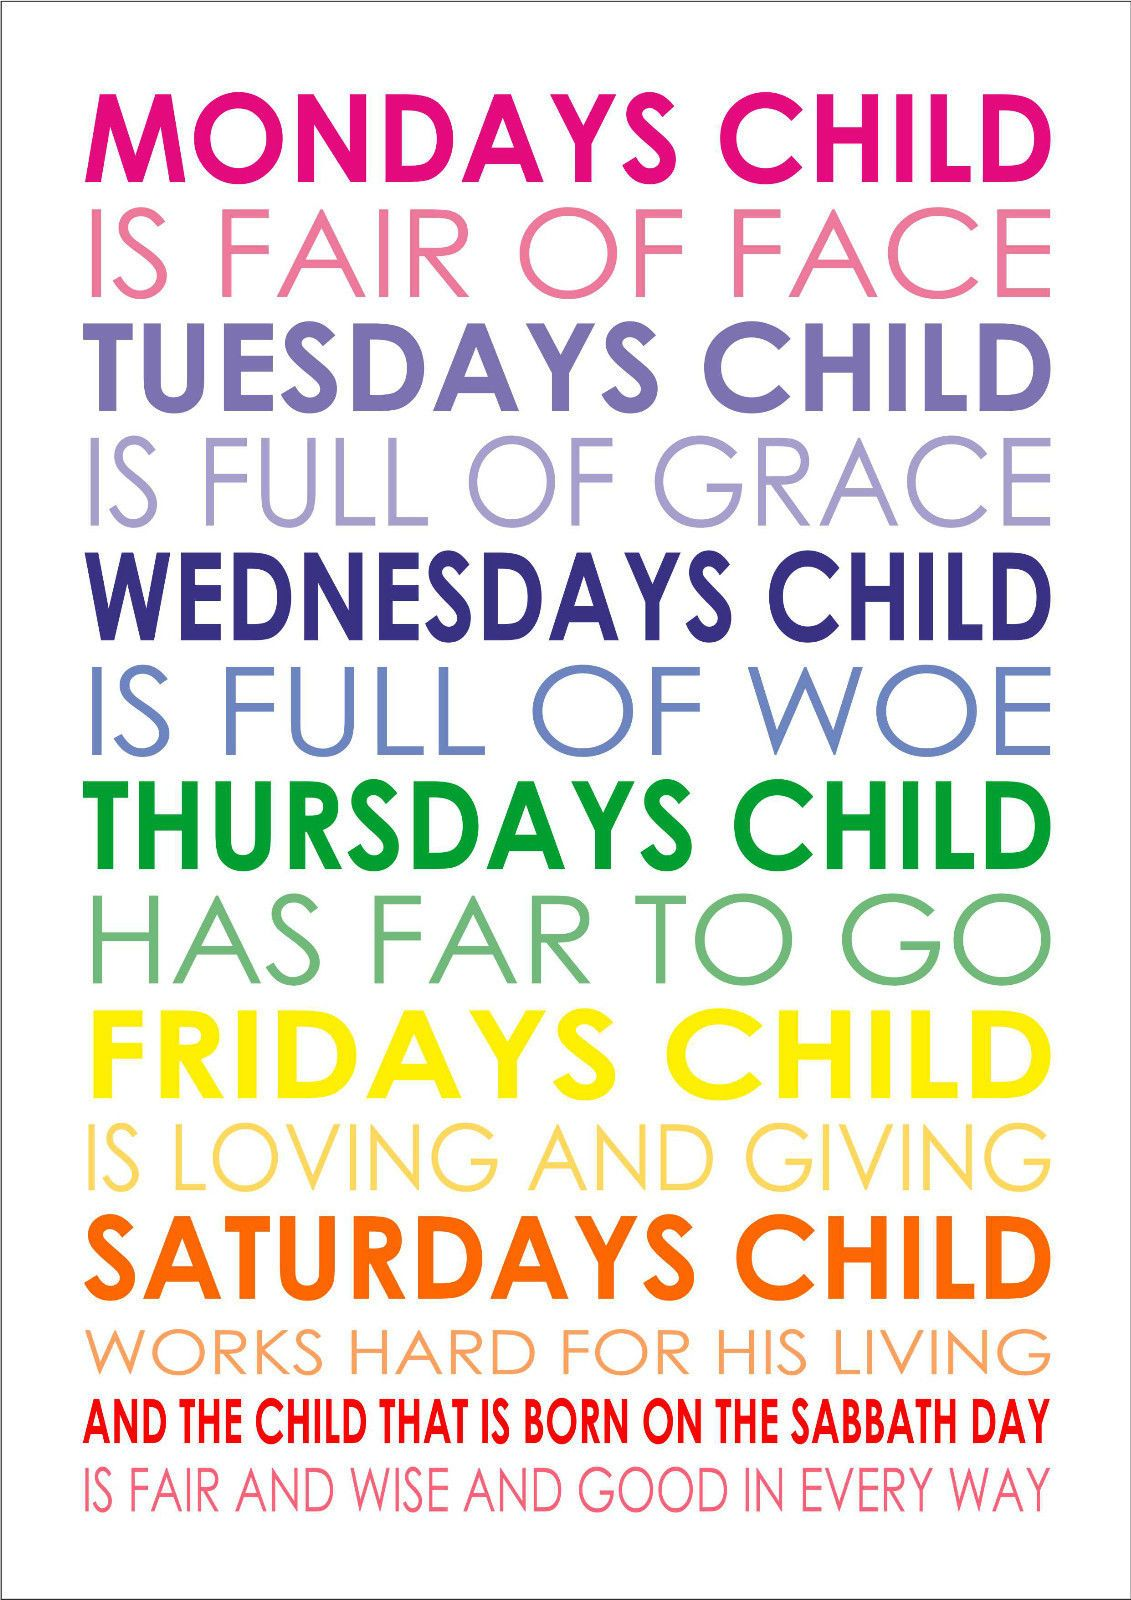 Mondays Child Is Fair Of Face Baby Nursery Rhyme Poem Quote A4 Poster Print Ebay